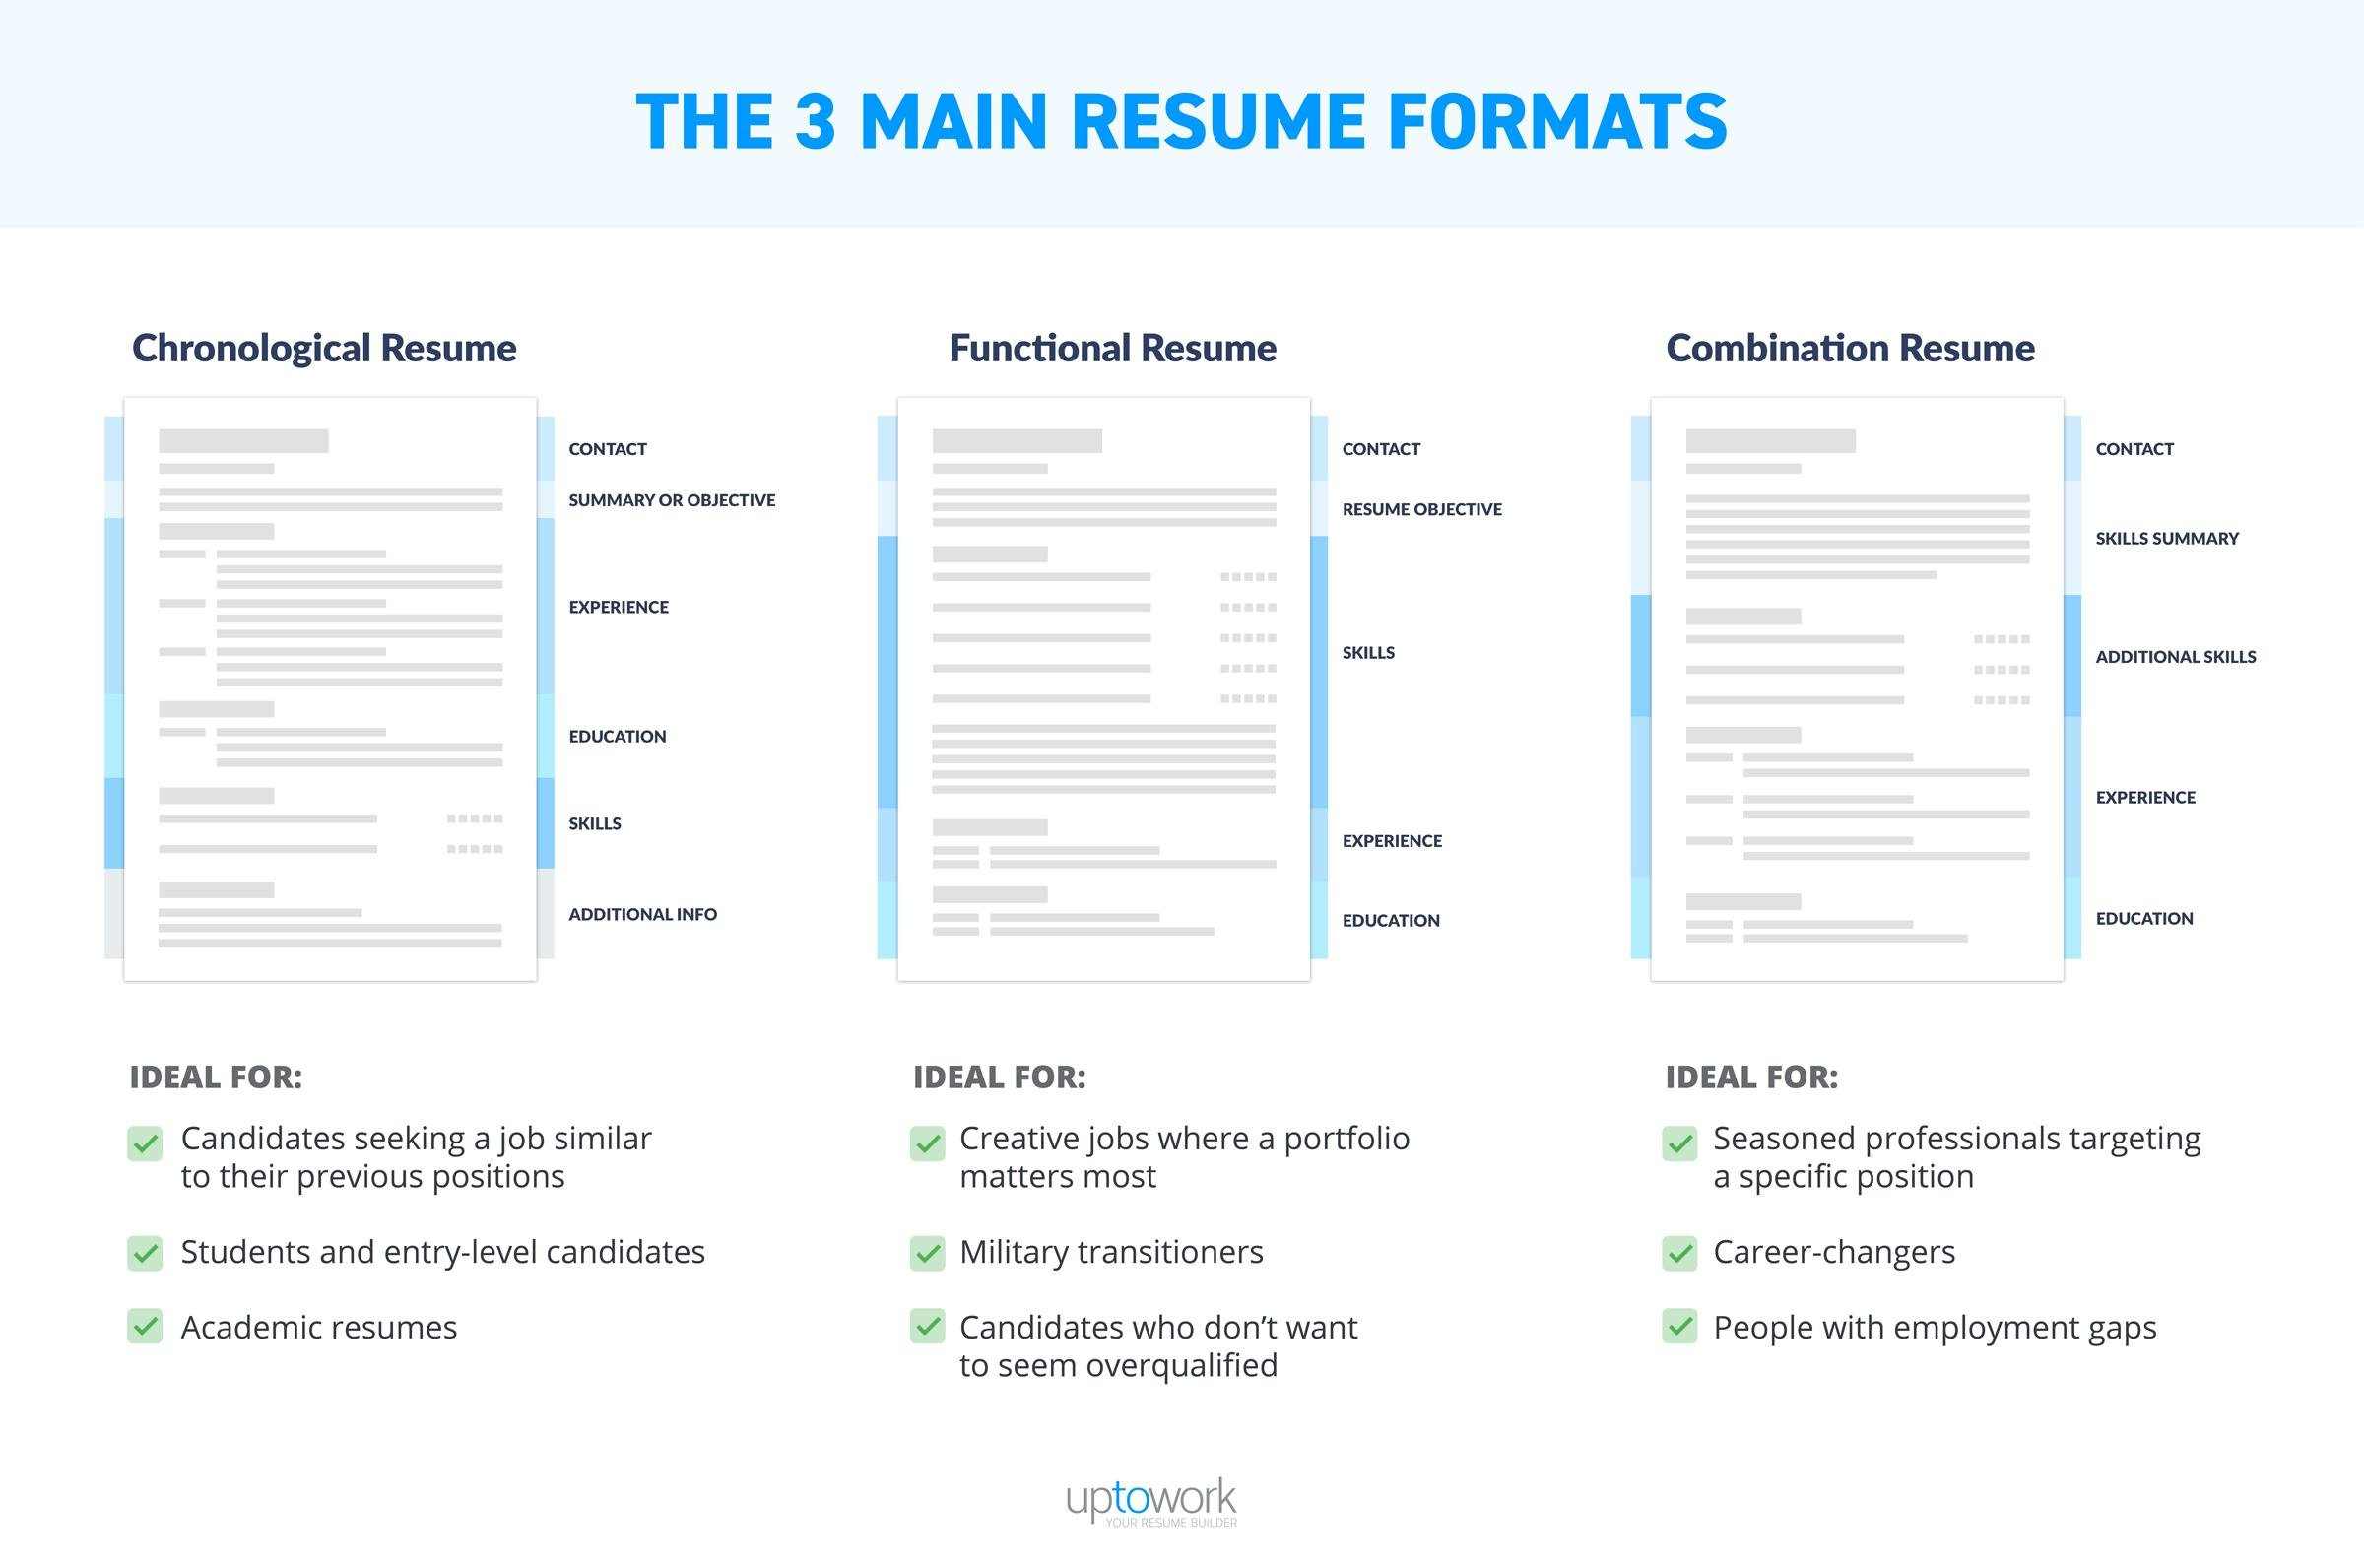 Superior Resume Formats: Chronological, Functional, Combination